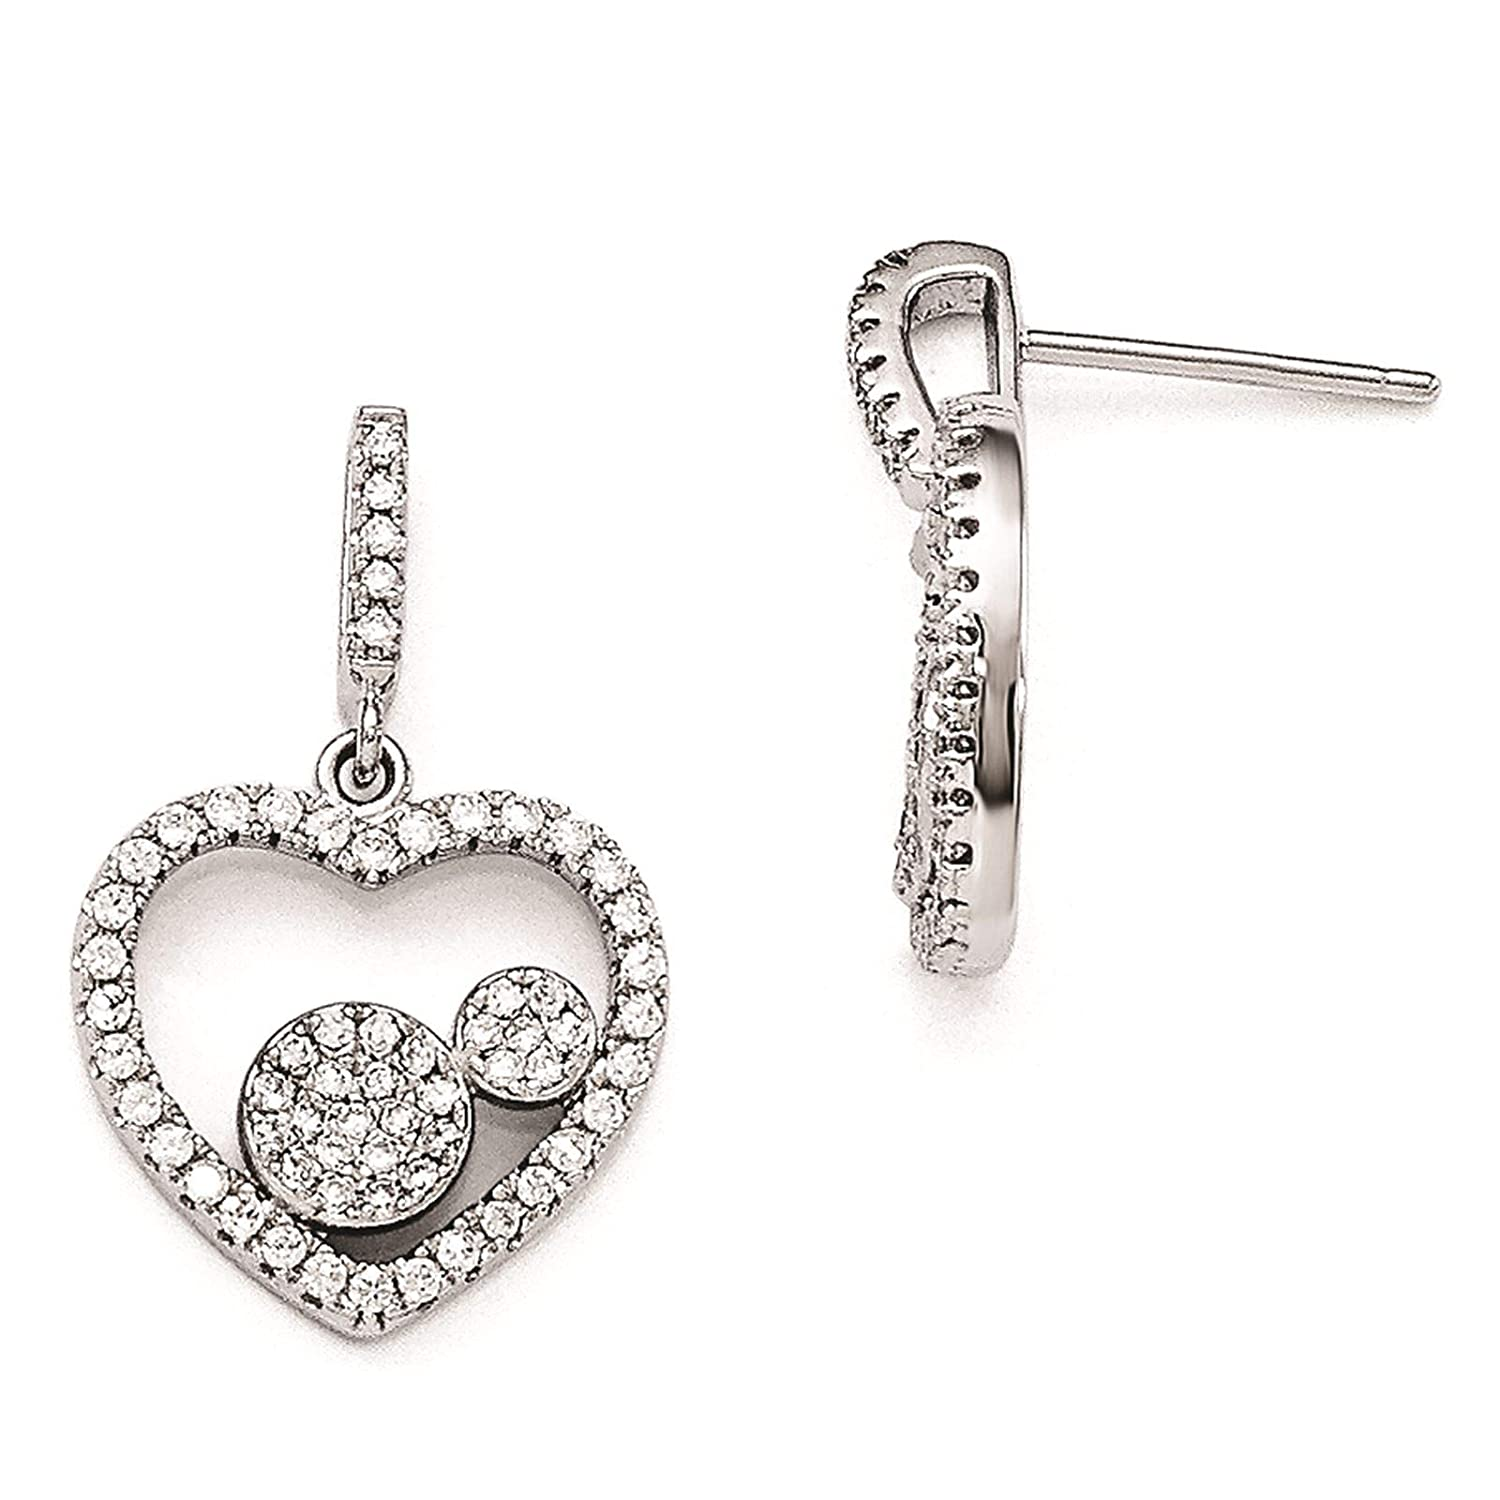 Brilliant Embers 925 Sterling Silver Rhodium-plated Polished CZ Heart Dangle Post Earrings